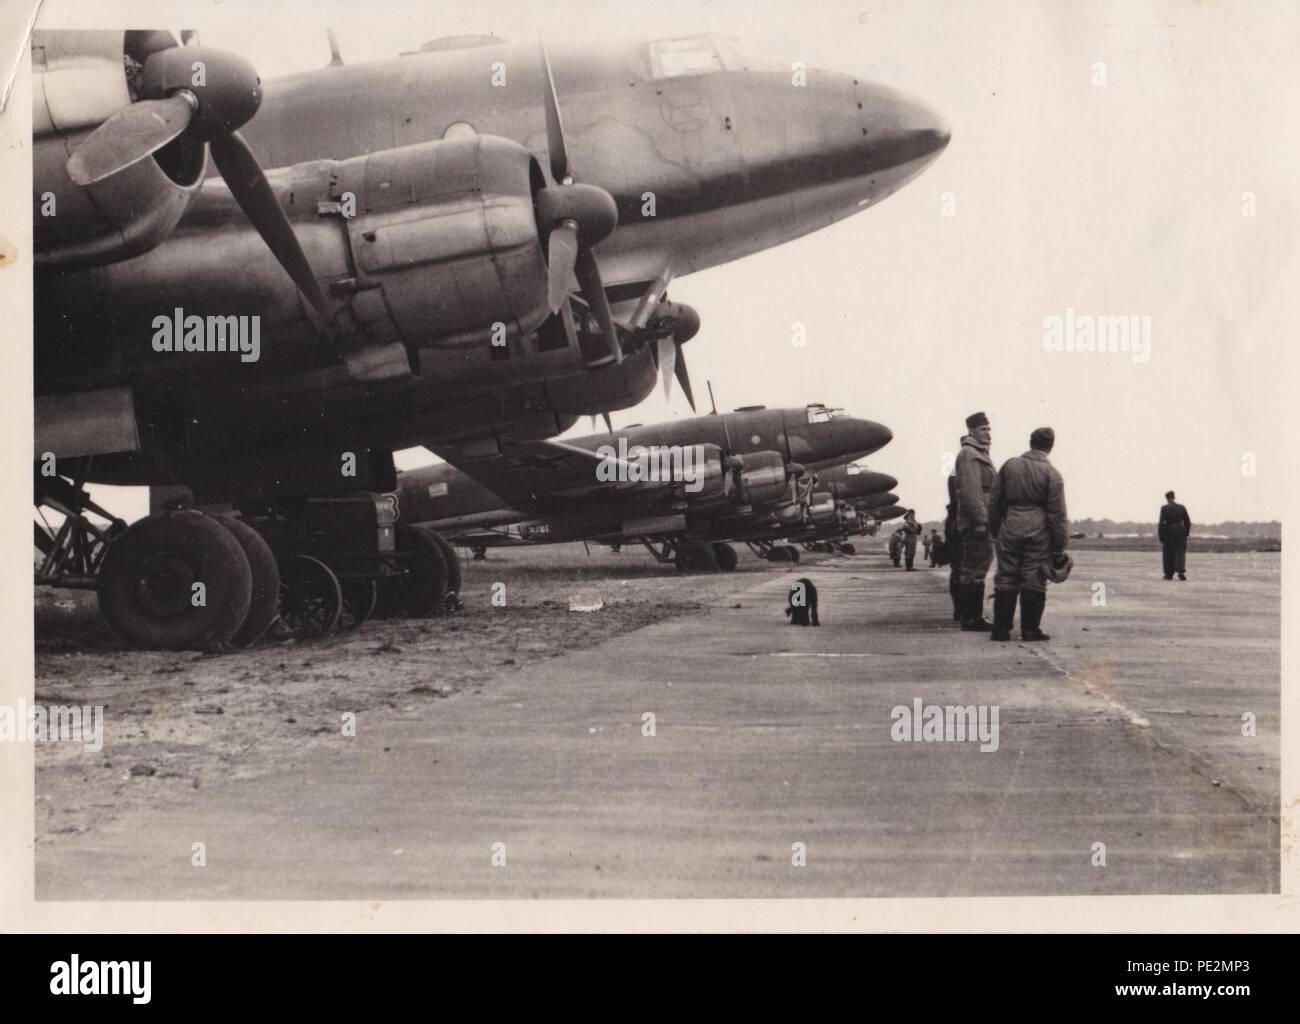 Image from the photo album of Oberfeldwebel Karl Gendner of 1. Staffel, Kampfgeschwader 40: Line up of Focke Wulf FW 200 Condor aircraft of 1. Staffel, KG 40 at Bordeaux on 28th June 1941. The censor has removed the KG 40 emblems on the front of the aircraft. - Stock Image